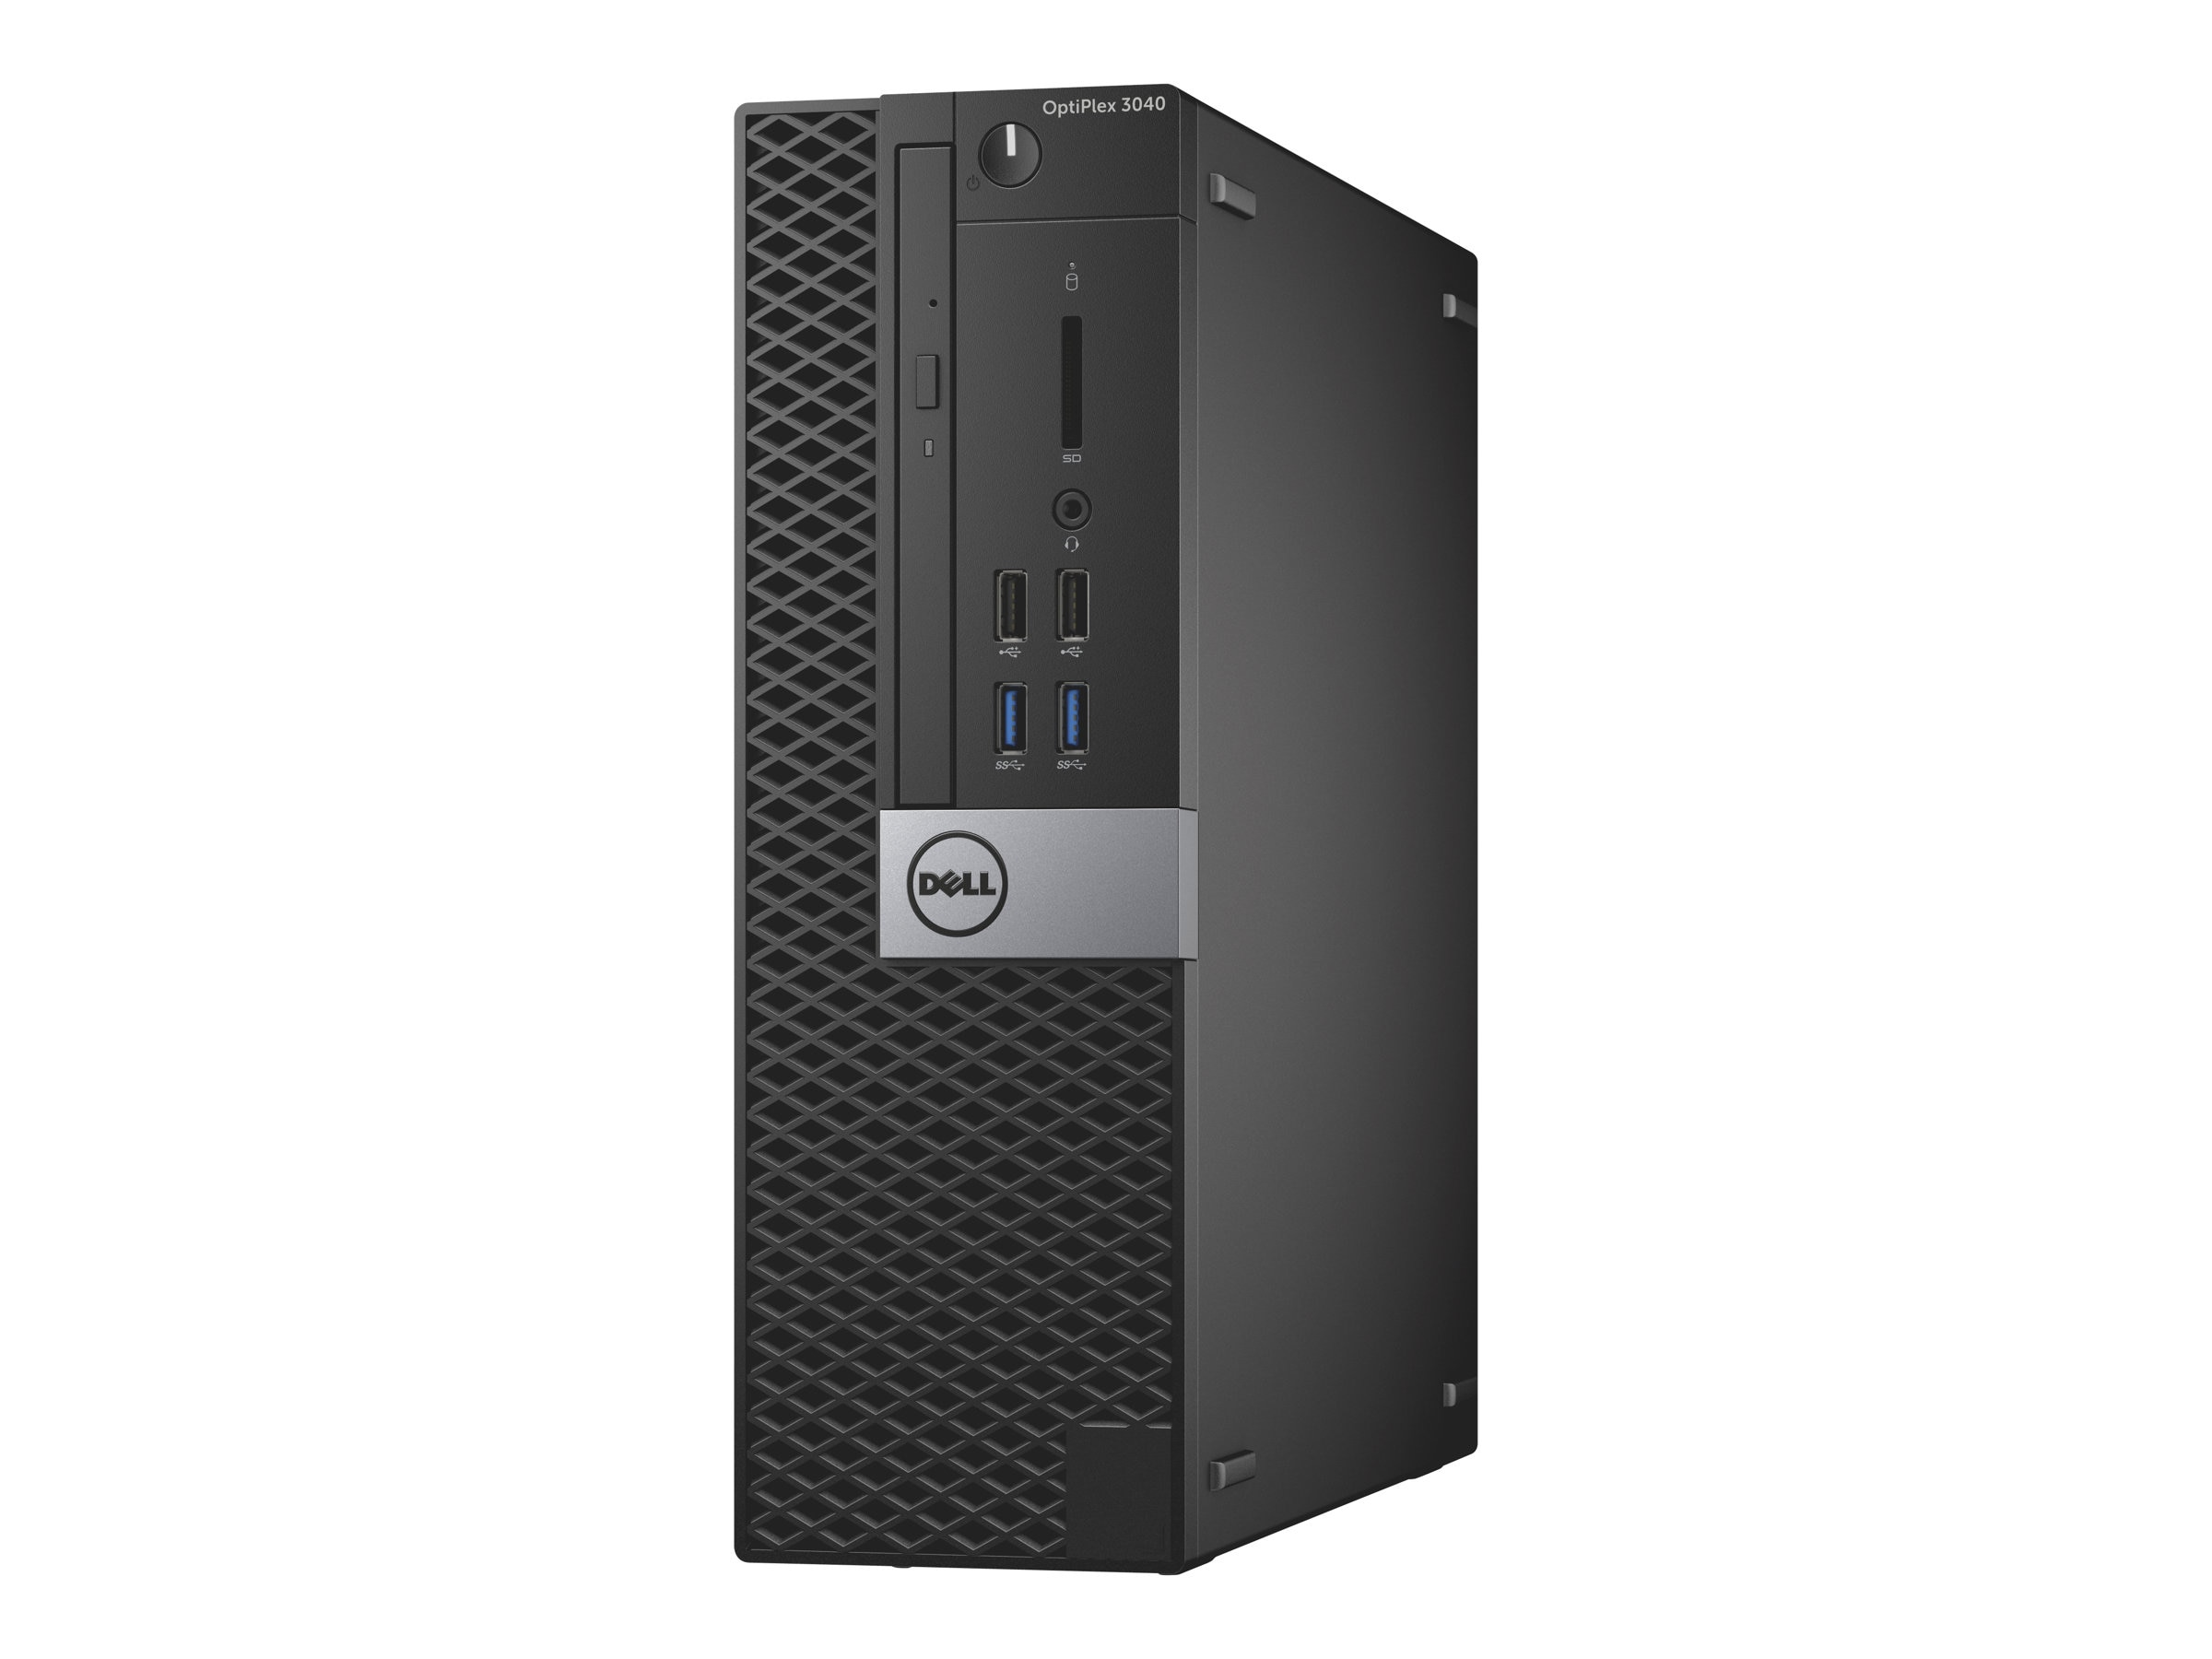 Dell OptiPlex 3040 3.7GHz Core i3 4GB RAM 128GB hard drive